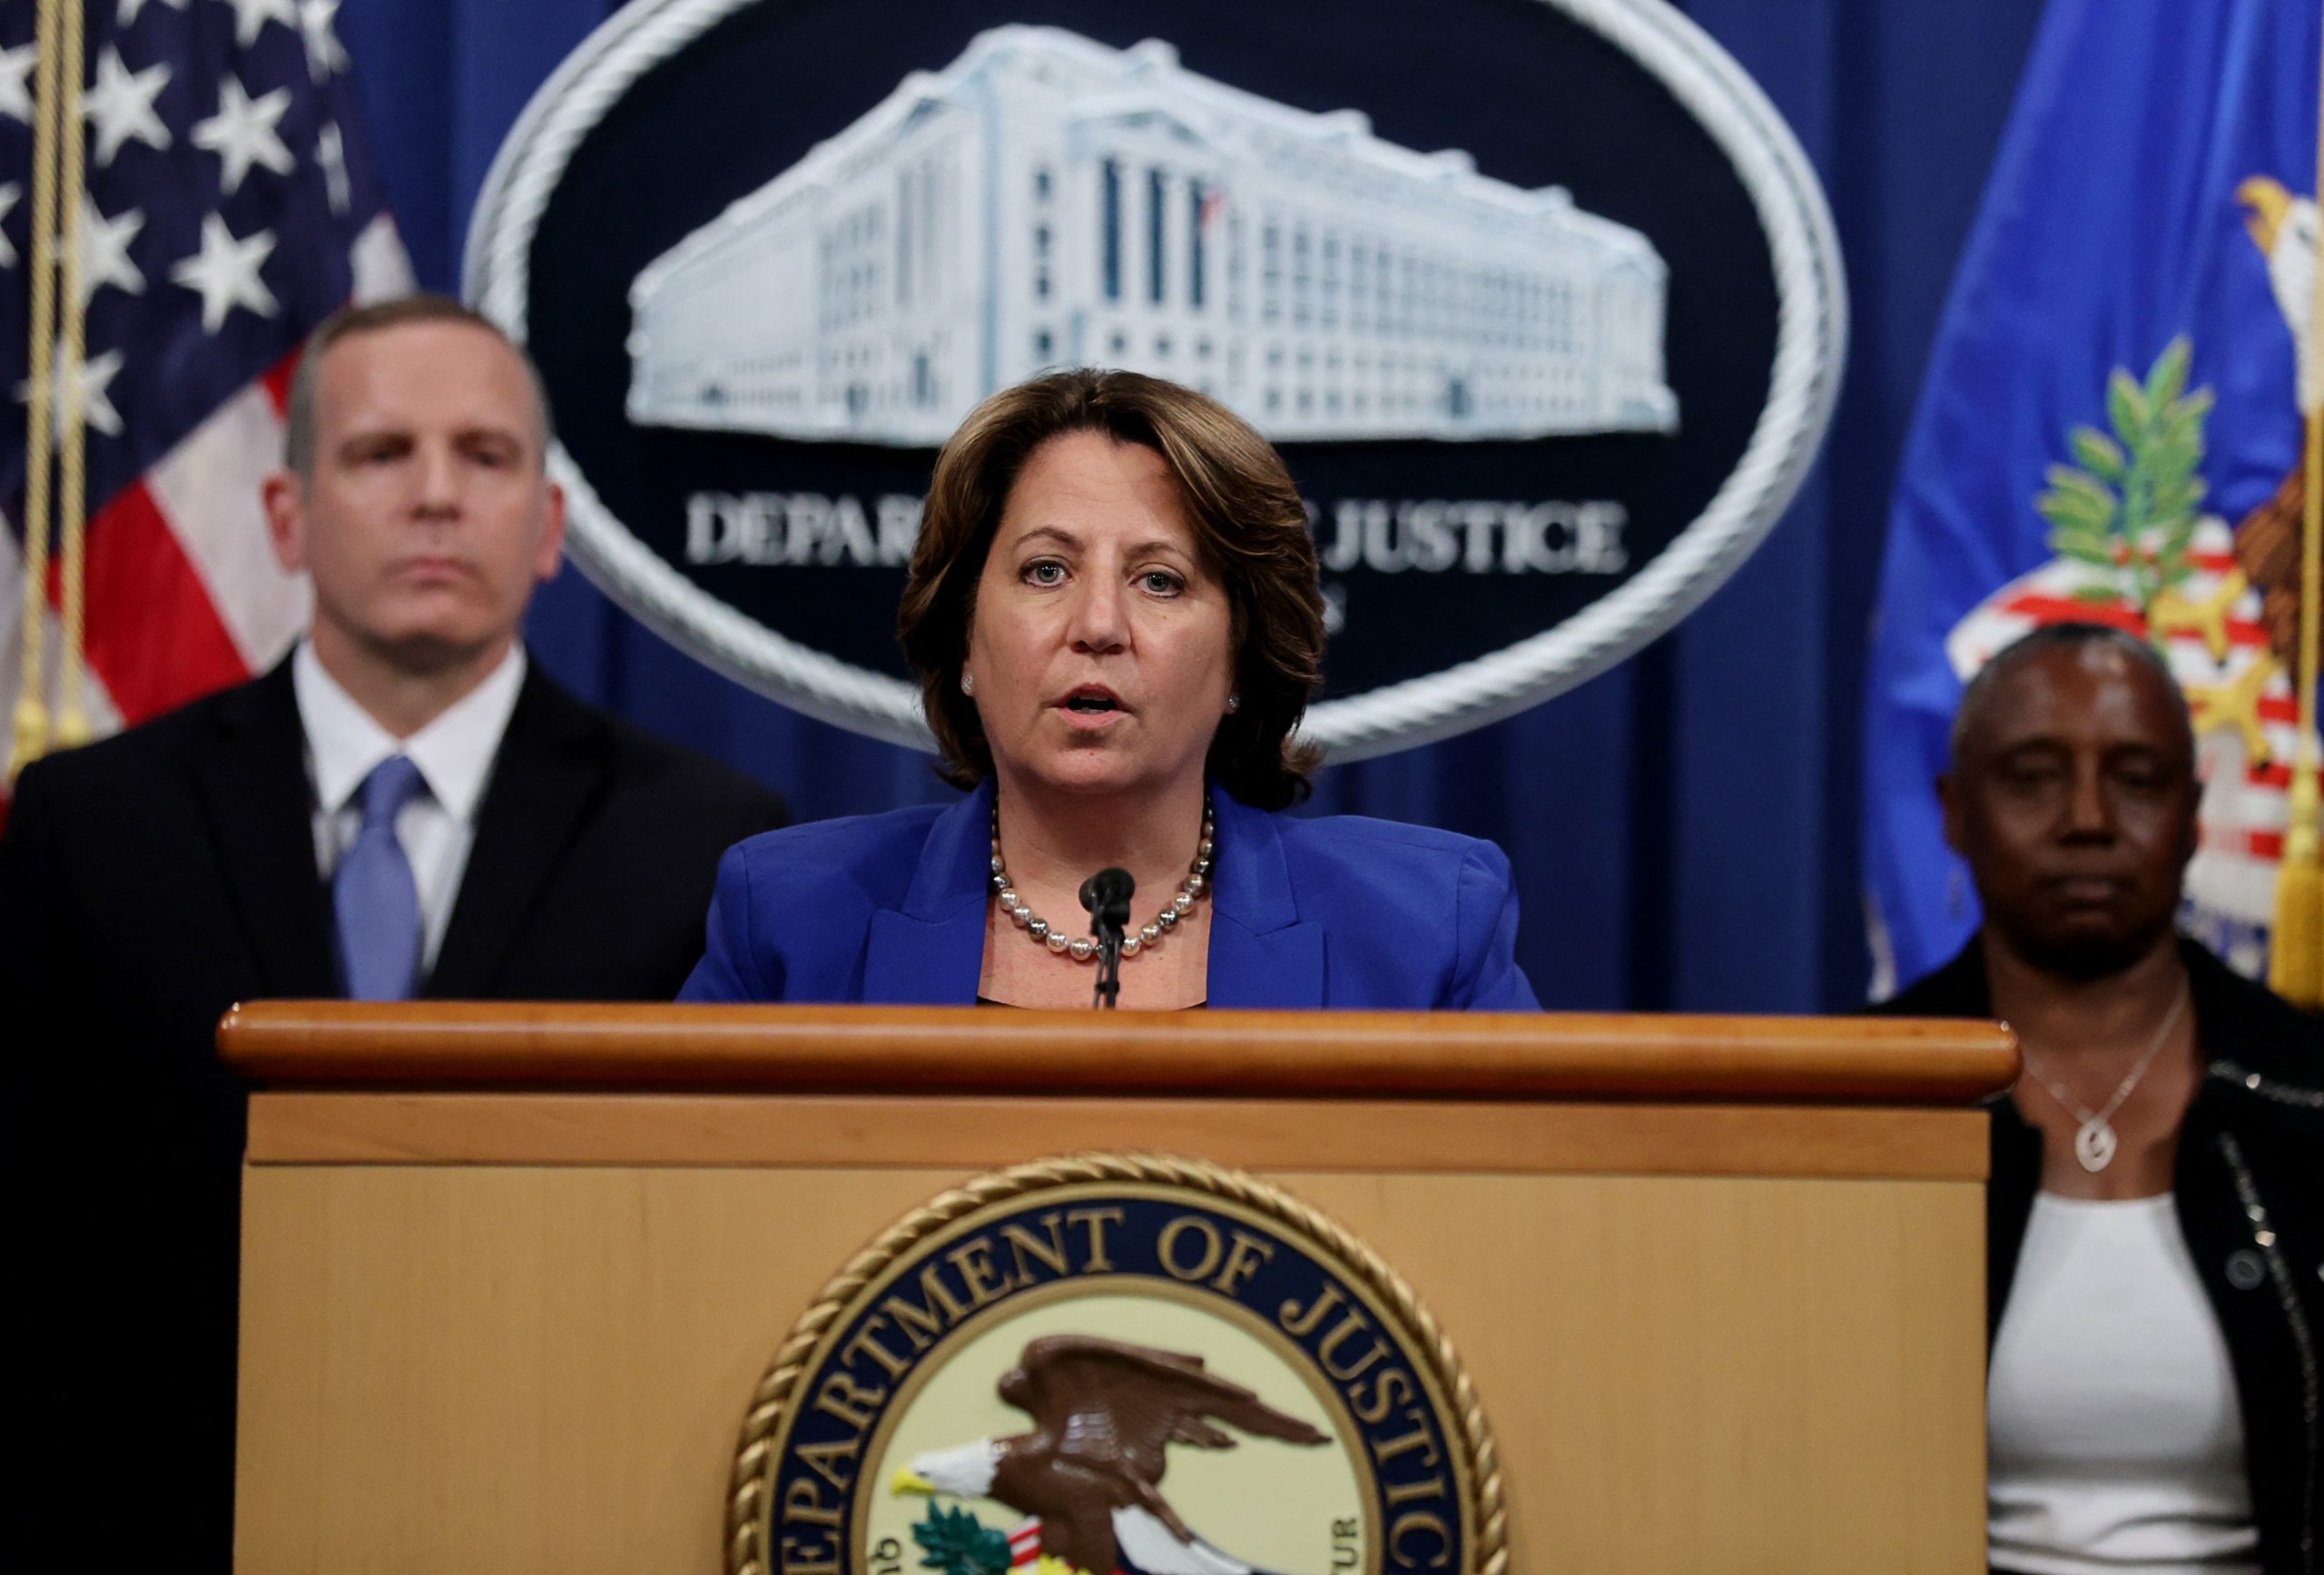 Deputy Attorney General Lisa Monaco speaks during the press conference Monday alongside FBI Deputy Director Paul Abbate and Acting US Attorney for the Northern District of California Stephanie Hinds. (Jonathan Ernst/Pool/AFP via Getty Images)